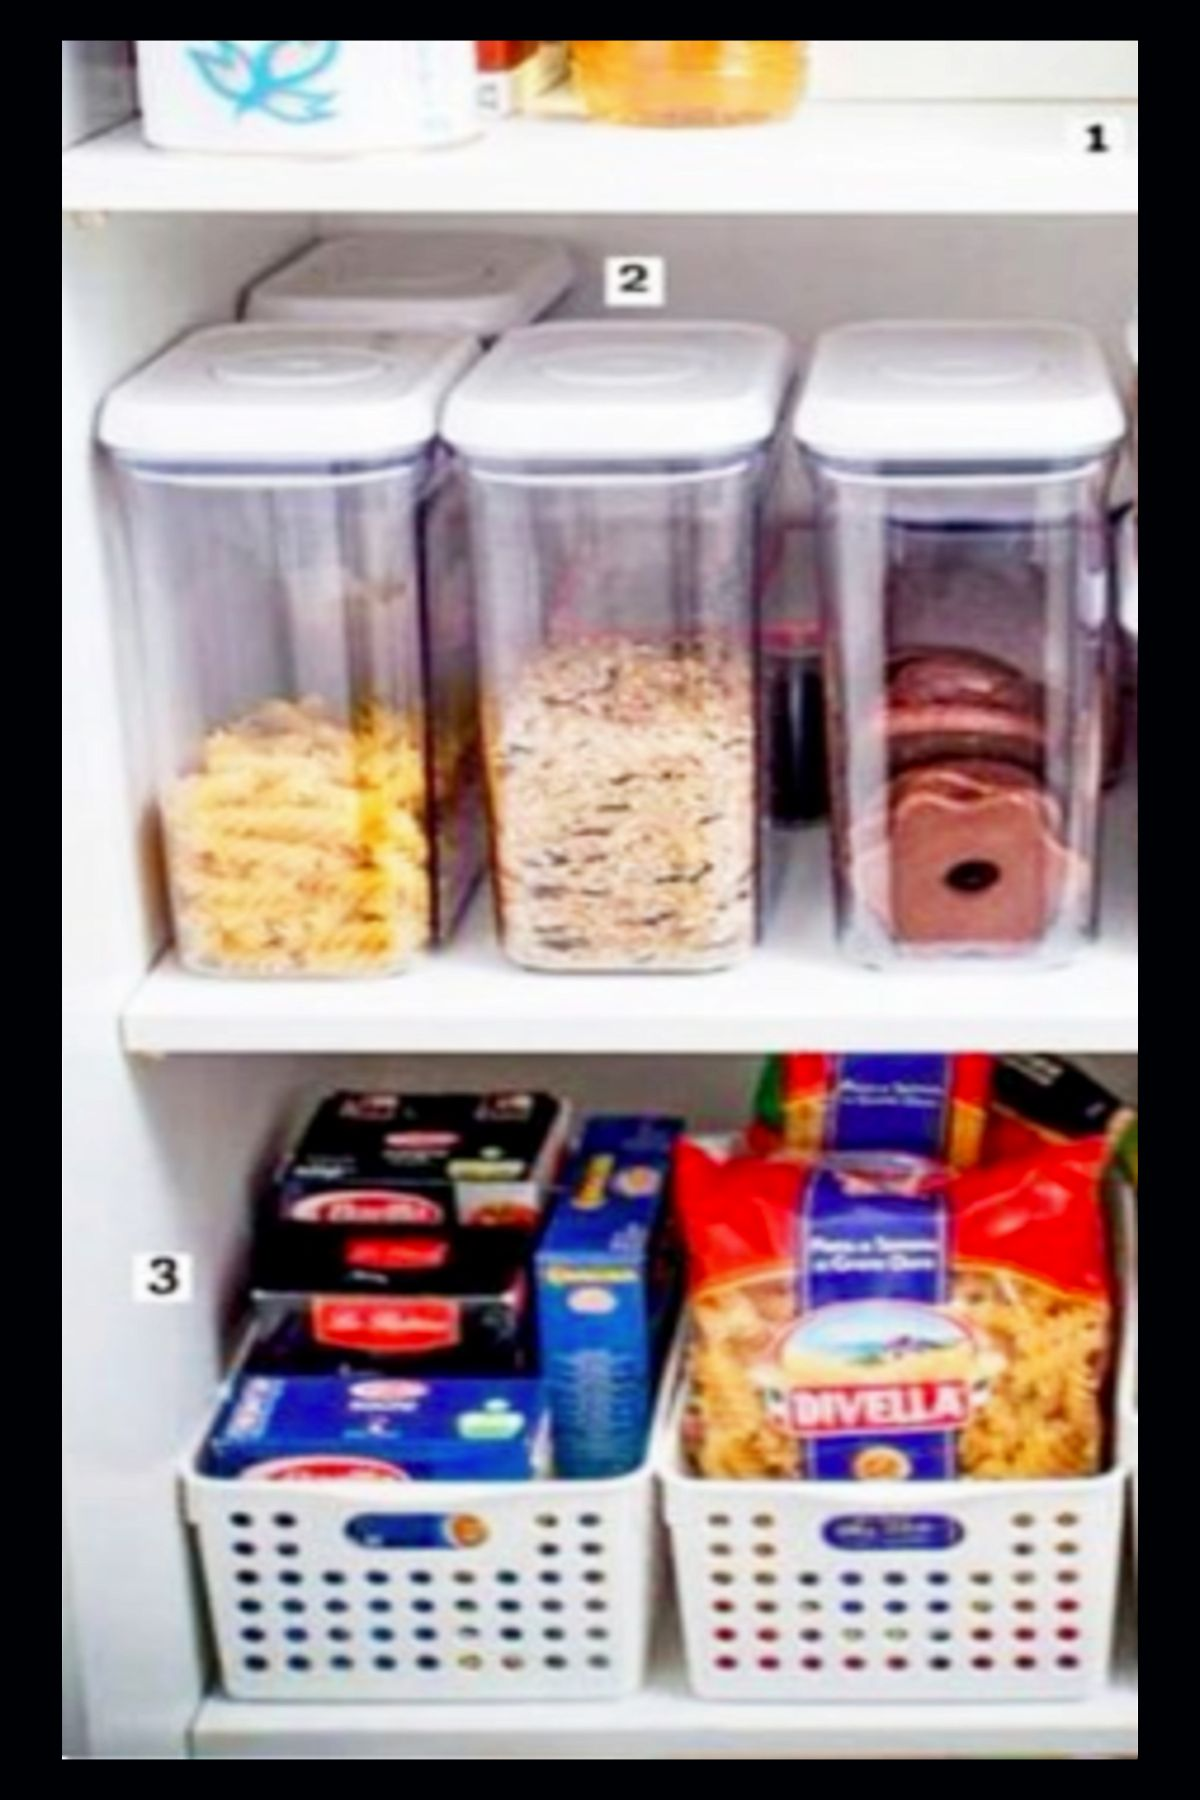 No Pantry How To Organize A Small Kitchen Without A Pantry Decluttering Your Life Kitchen Without Pantry Small Pantry Cabinet Small Pantry Organization